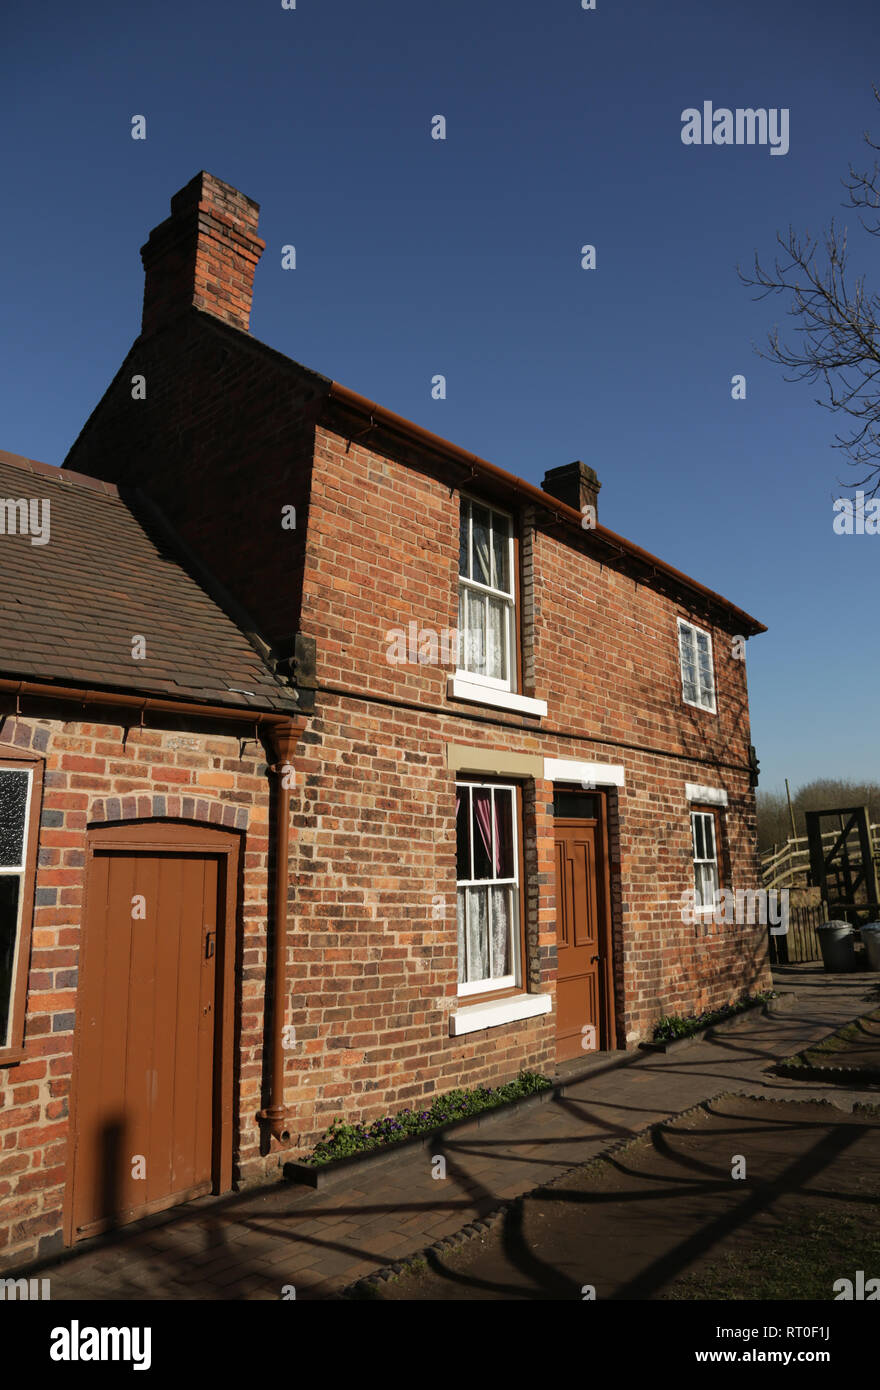 A cottage at the Black country living museum, Dudley, West midlands, England, UK. - Stock Image